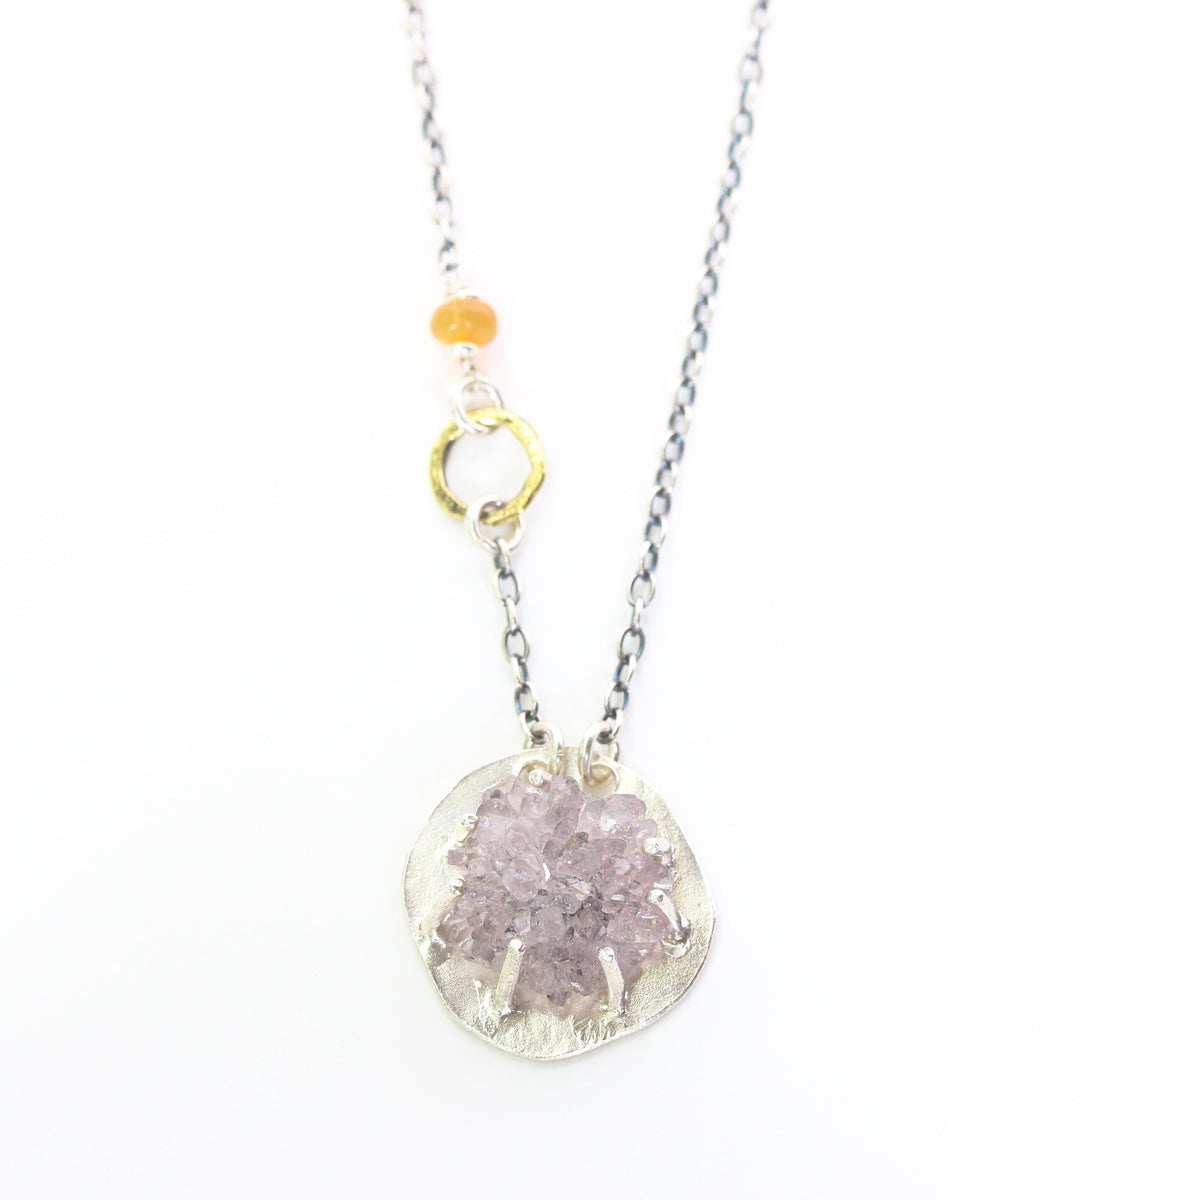 Light purple druzy pendant necklace in silver prongs setting with brass circle shape and opal beads secondary on sterling silver chain